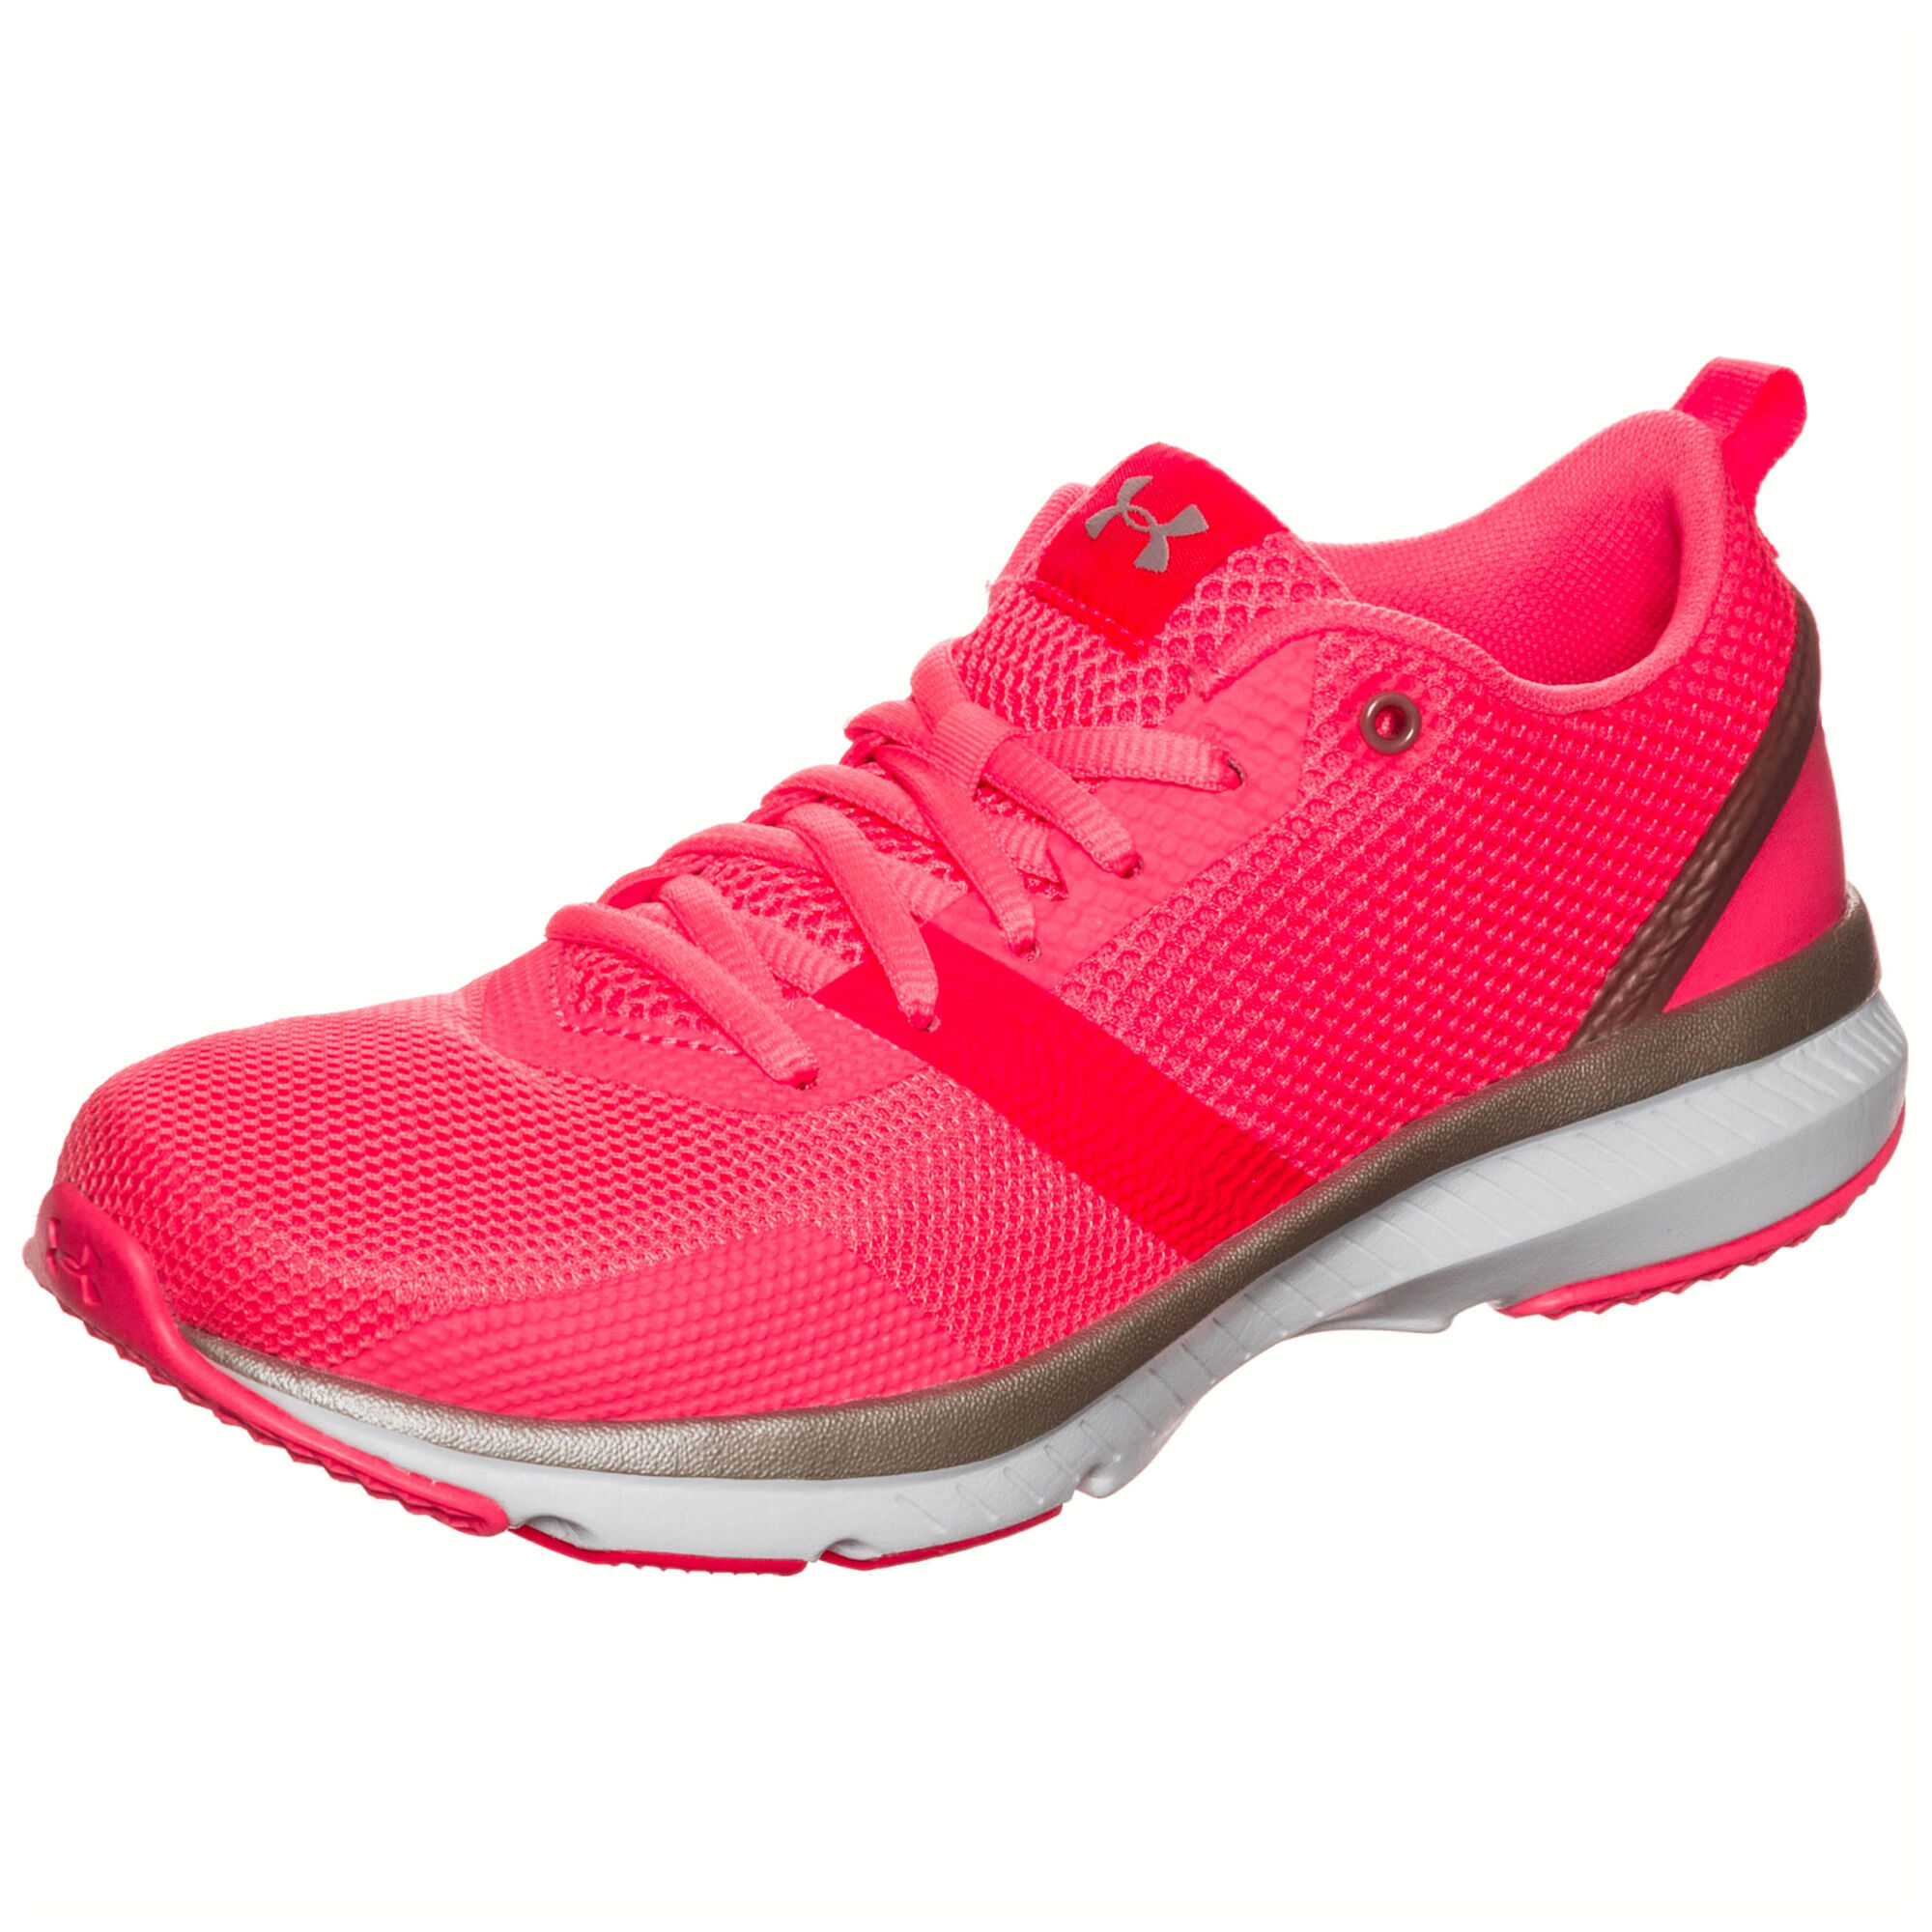 UNDER ARMOUR 'Press 2' Trainingsschuh rot qehfB4Z